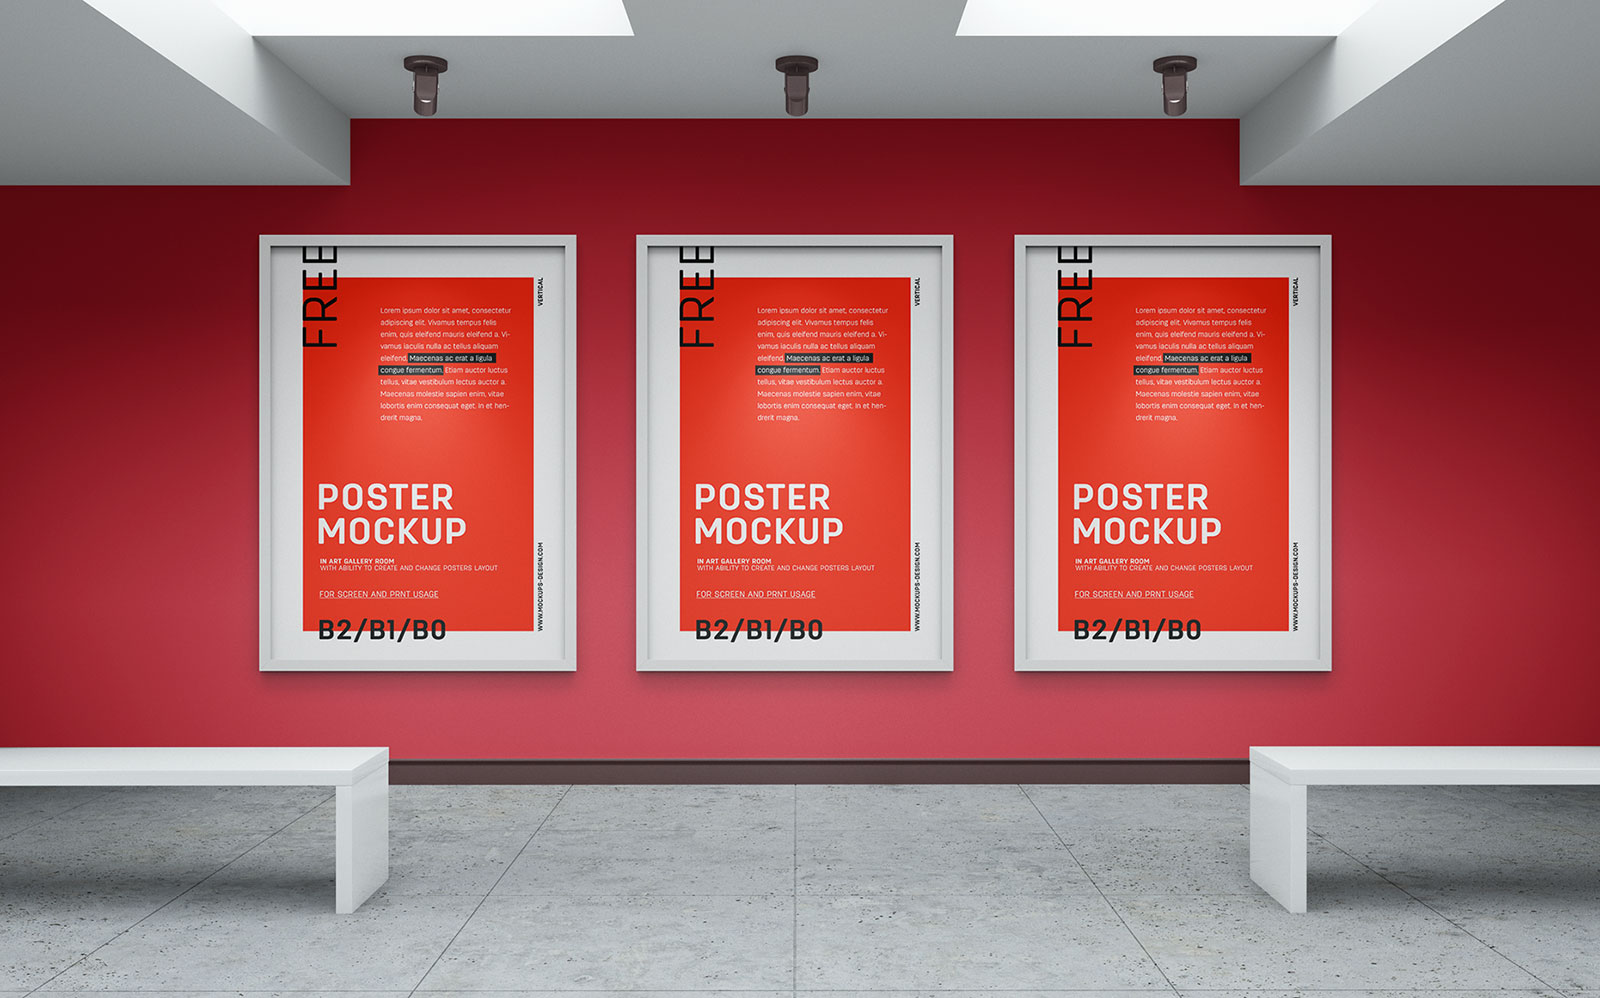 Free Art Gallery Wall Canvas / Poster Mockup PSD